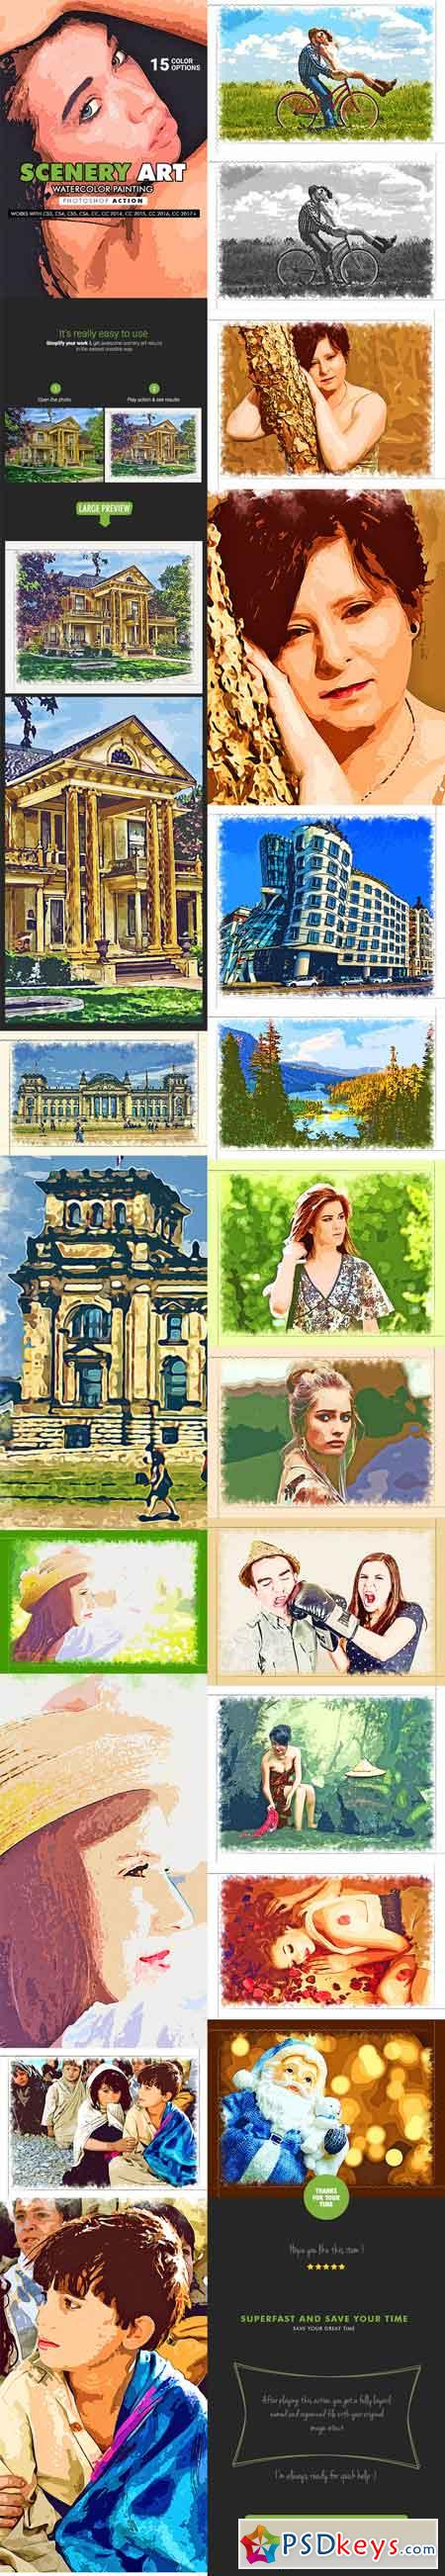 Scenery Art - Watercolor Painting Photoshop Action 19869916